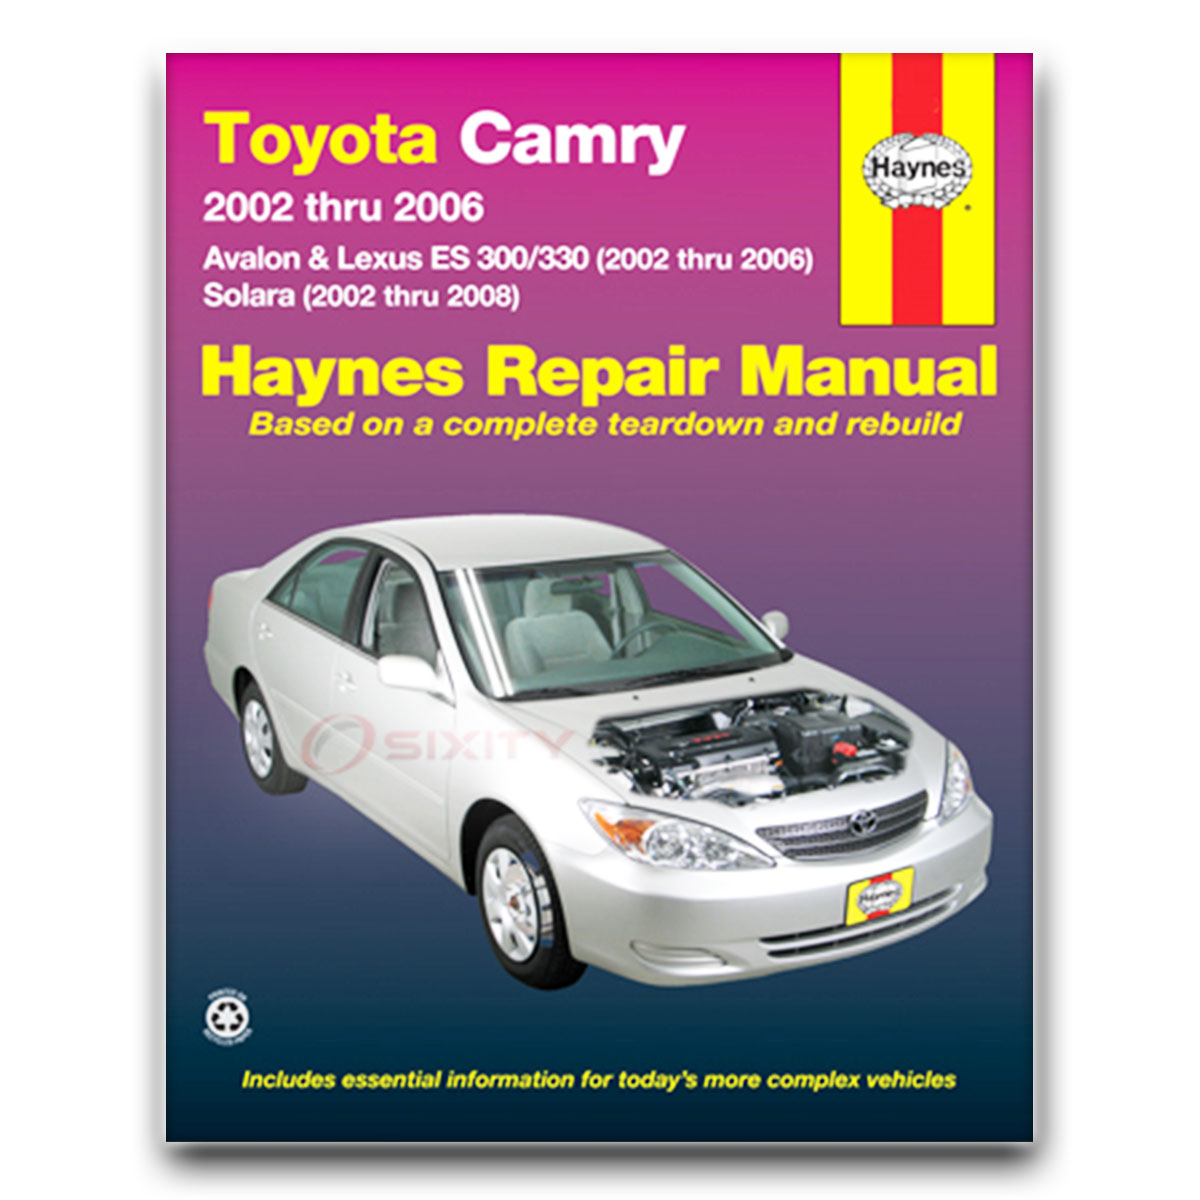 Other Car Manuals 02 2002 Toyota Camry Solara owners manual ...